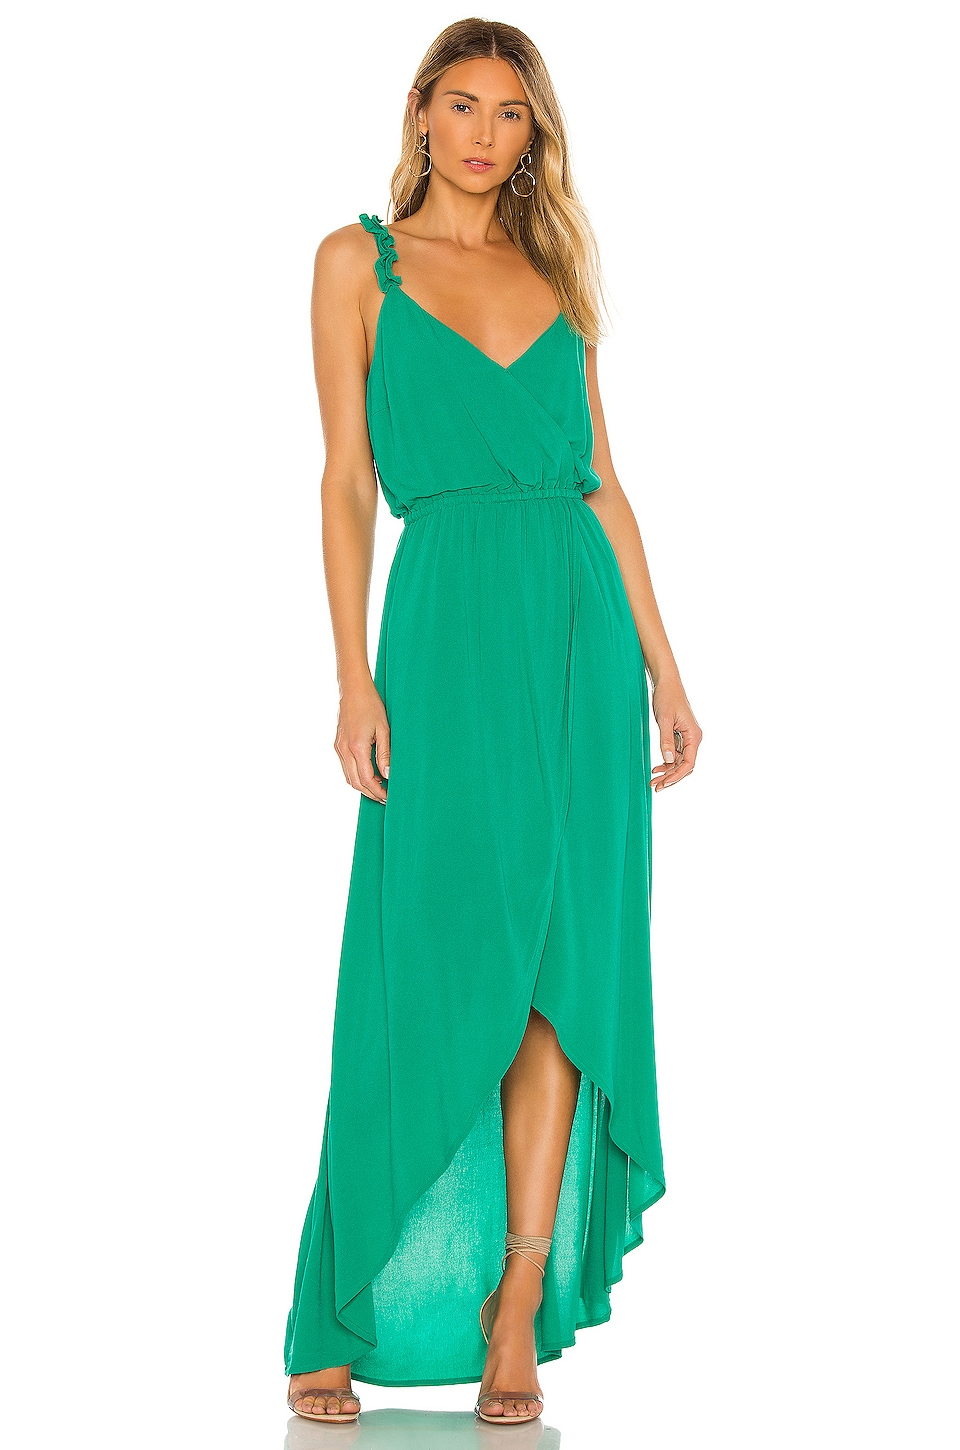 JACK by BB Dakota Ruffle & Cut Midi Dress             BB Dakota                                                                                                       CA$ 124.98 13